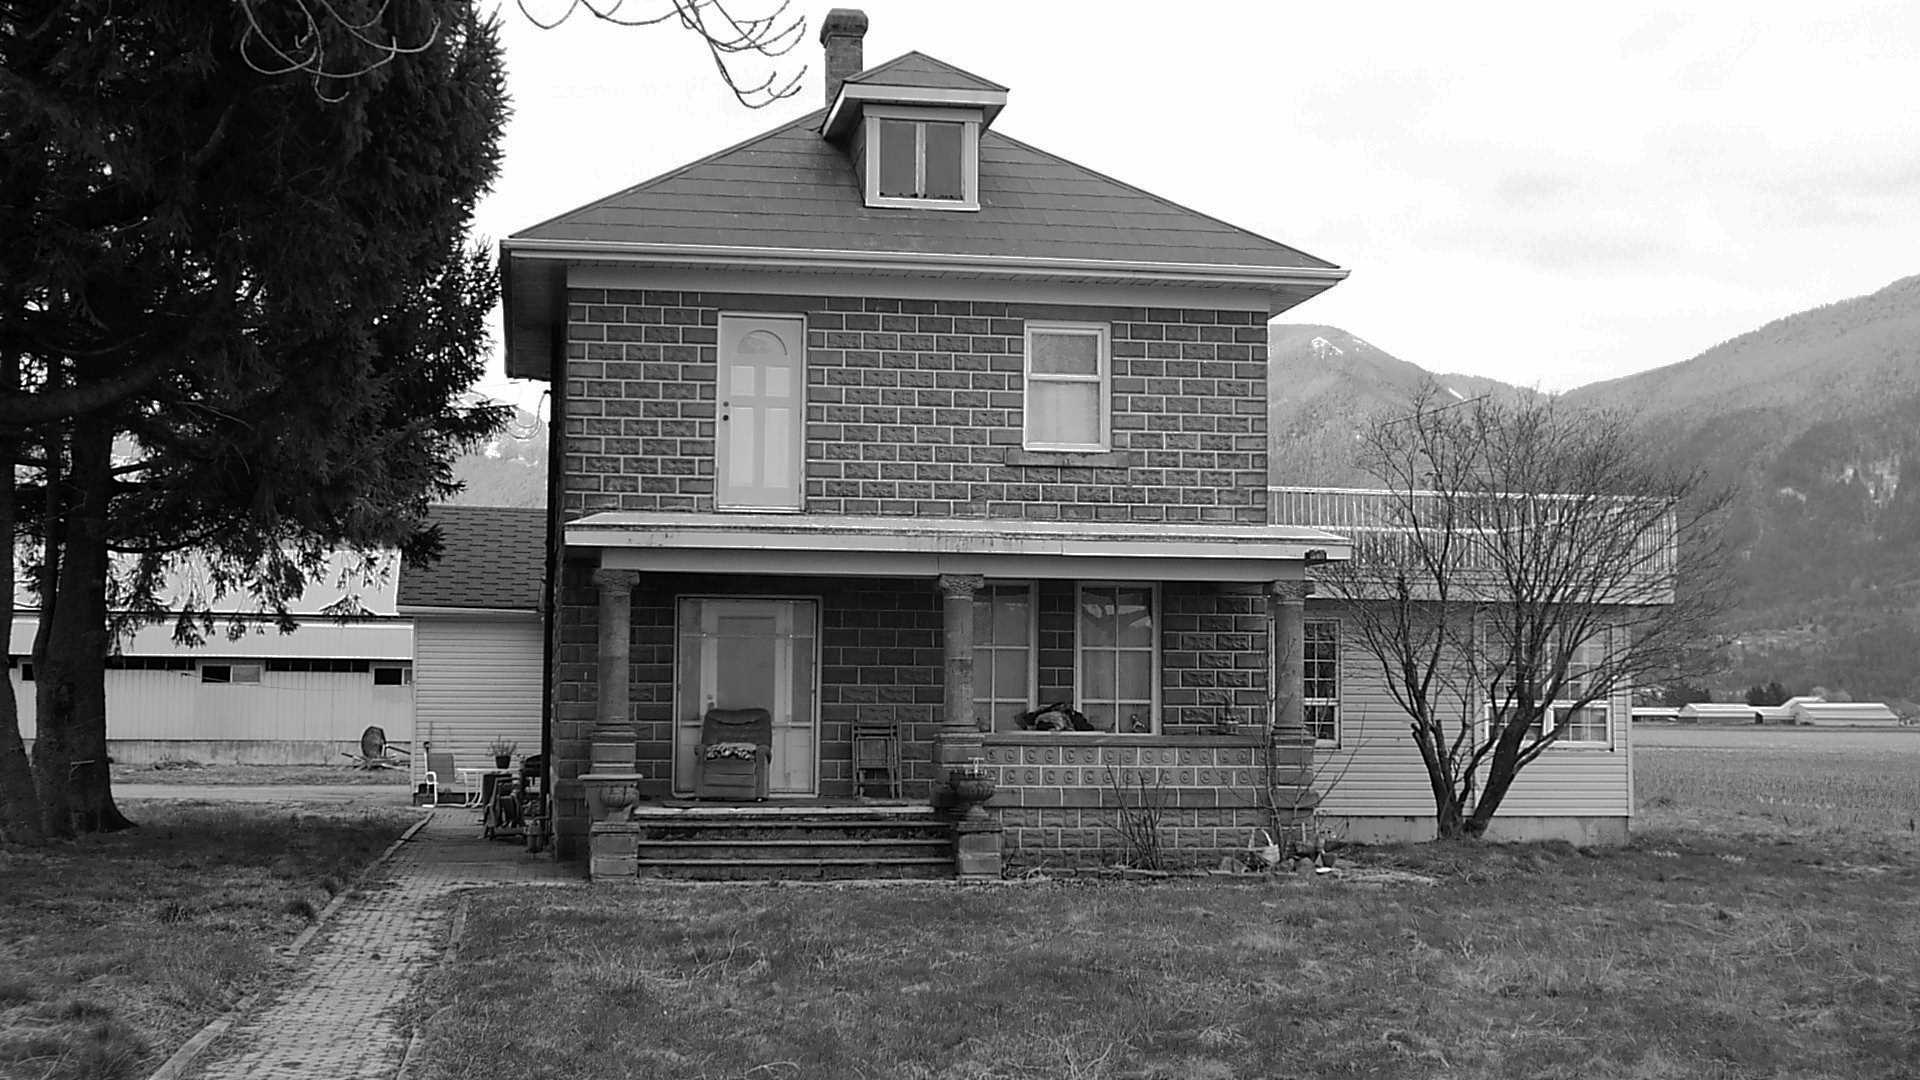 The royal hotel chilliwack blog concrete block houses for Concrete block house